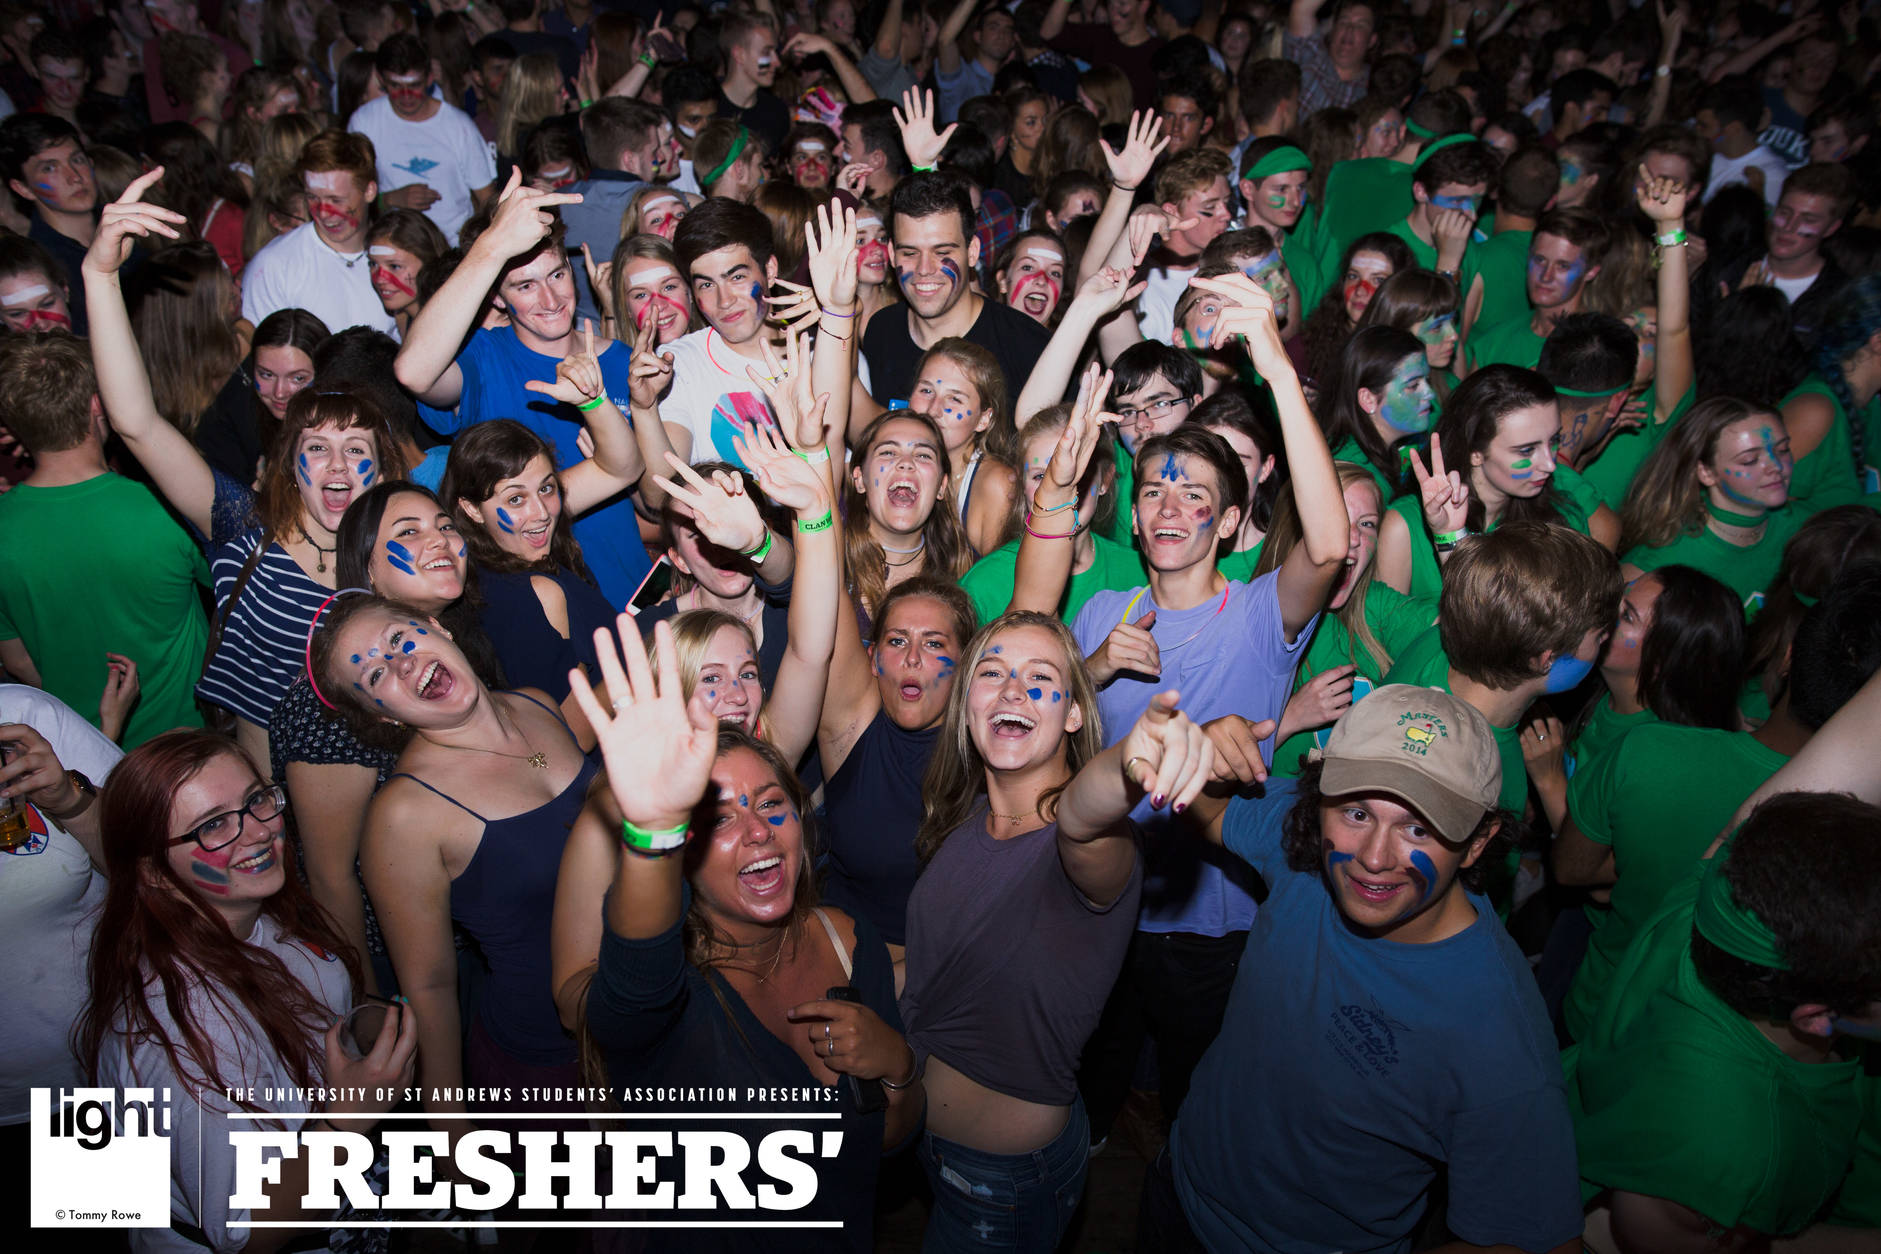 Top 5 Things To Do: Freshers Edition